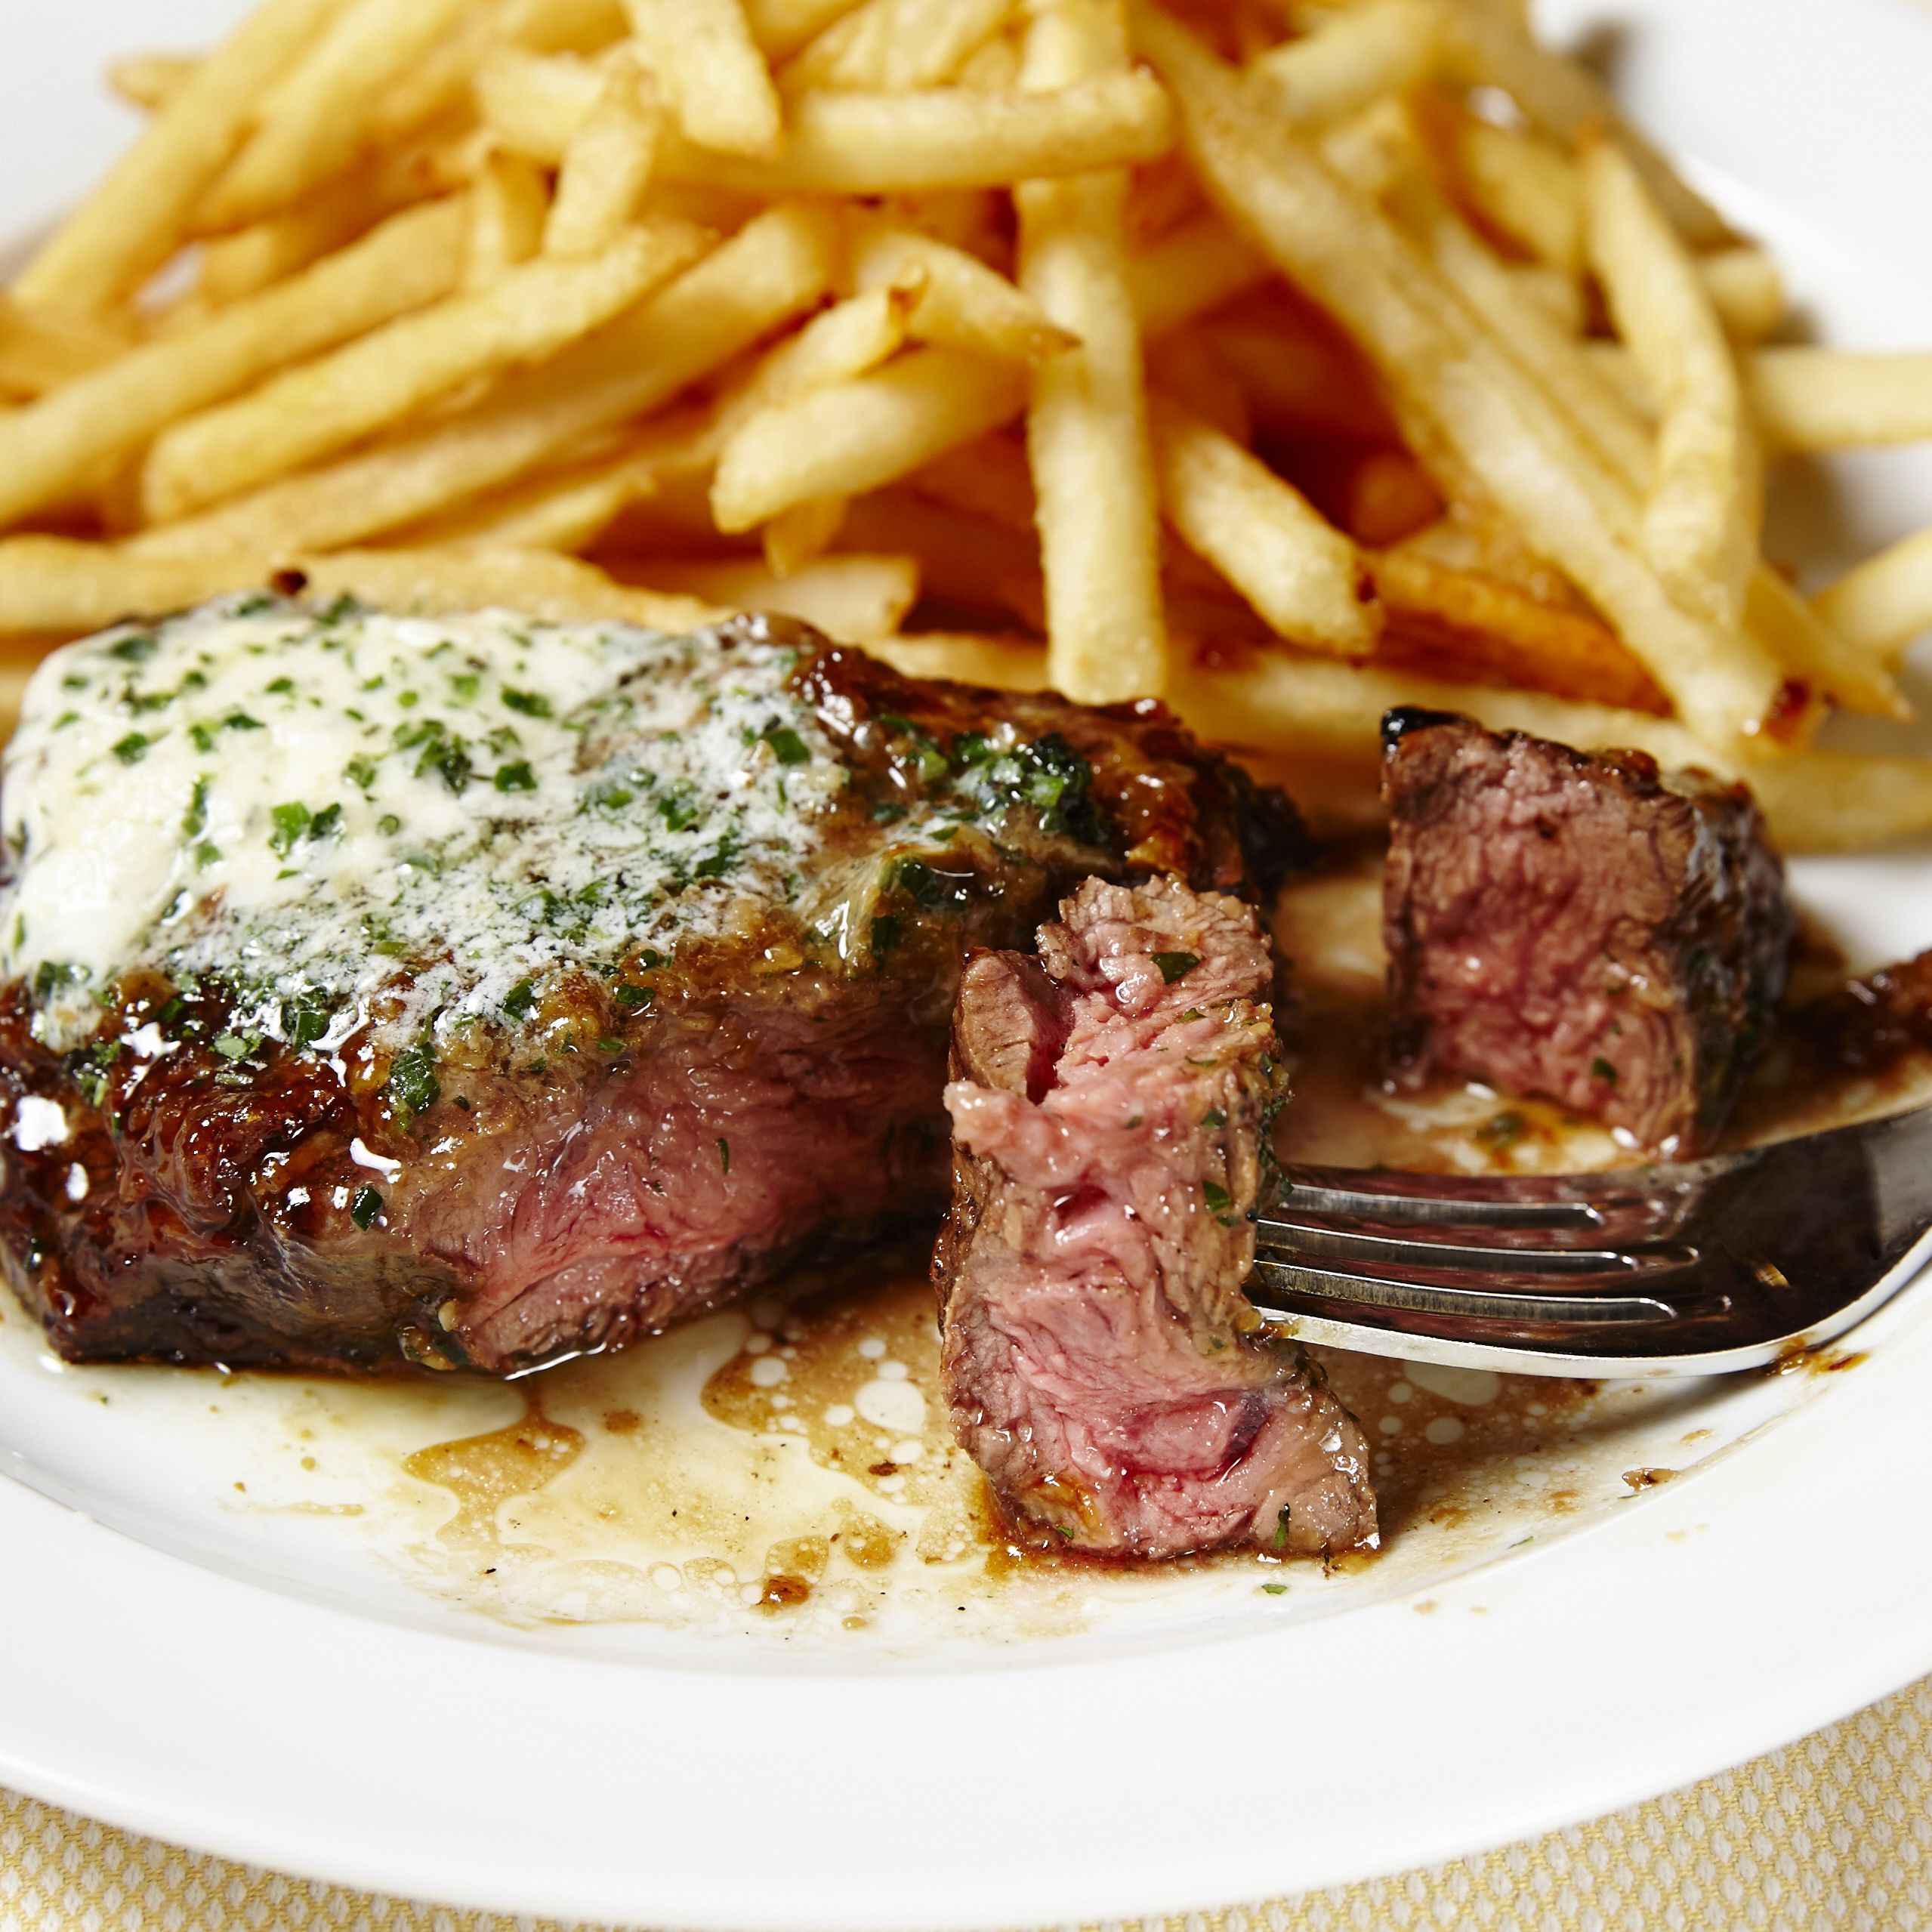 Where to Find the Best Steak-Frites in Paris